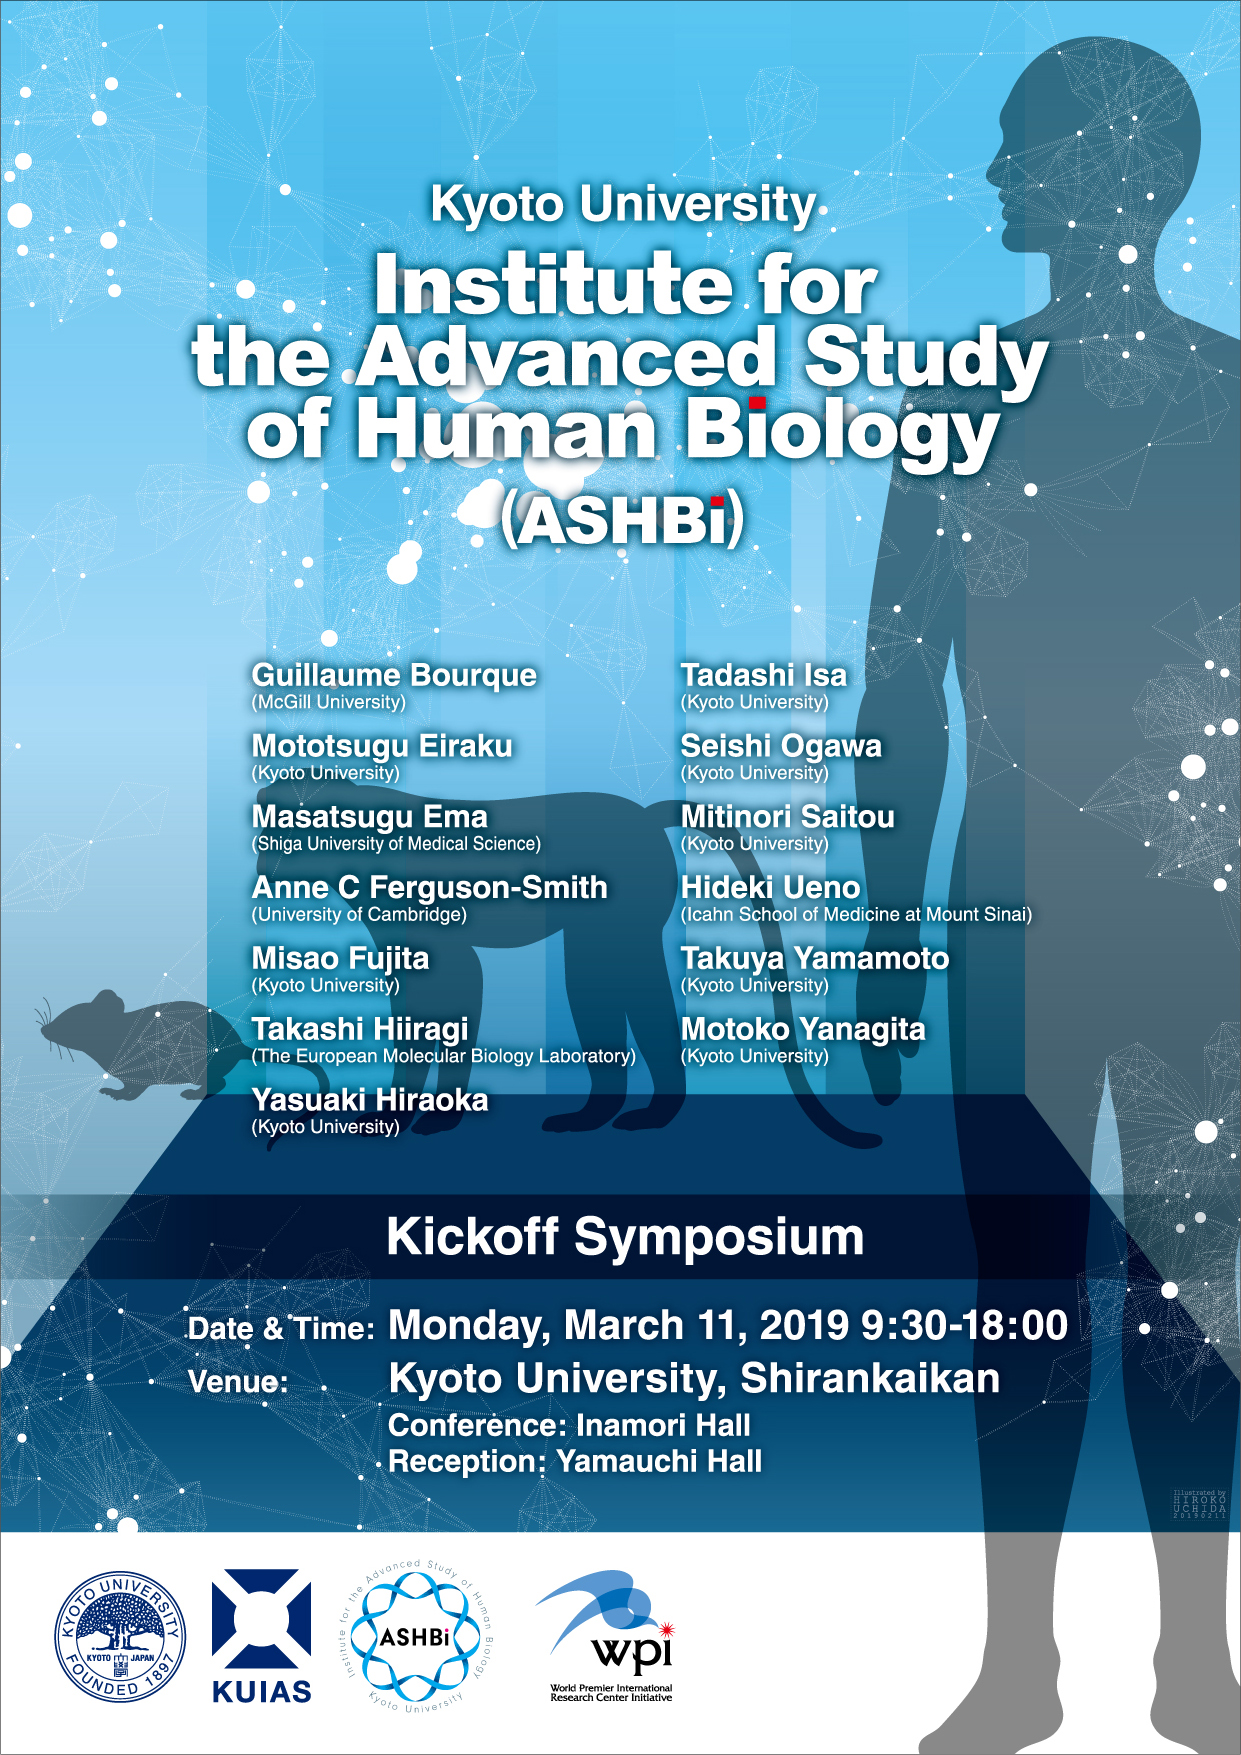 Institute for the Advanced Study of Human Biology (ASHBi)Kick-off Symposium